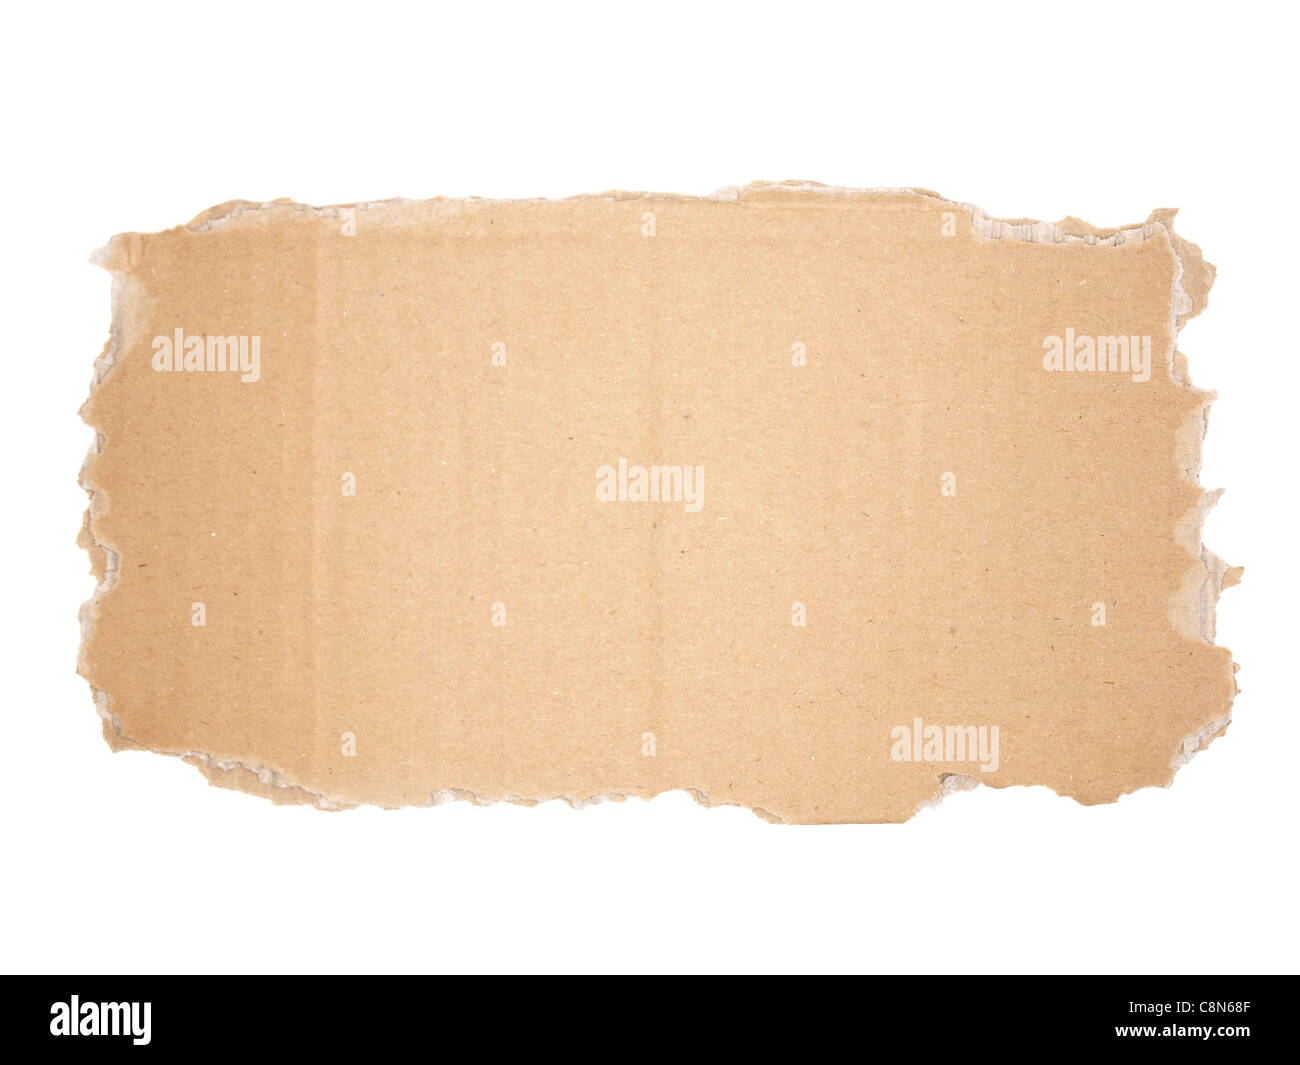 blank cardboard sign with torn edges - Stock Image